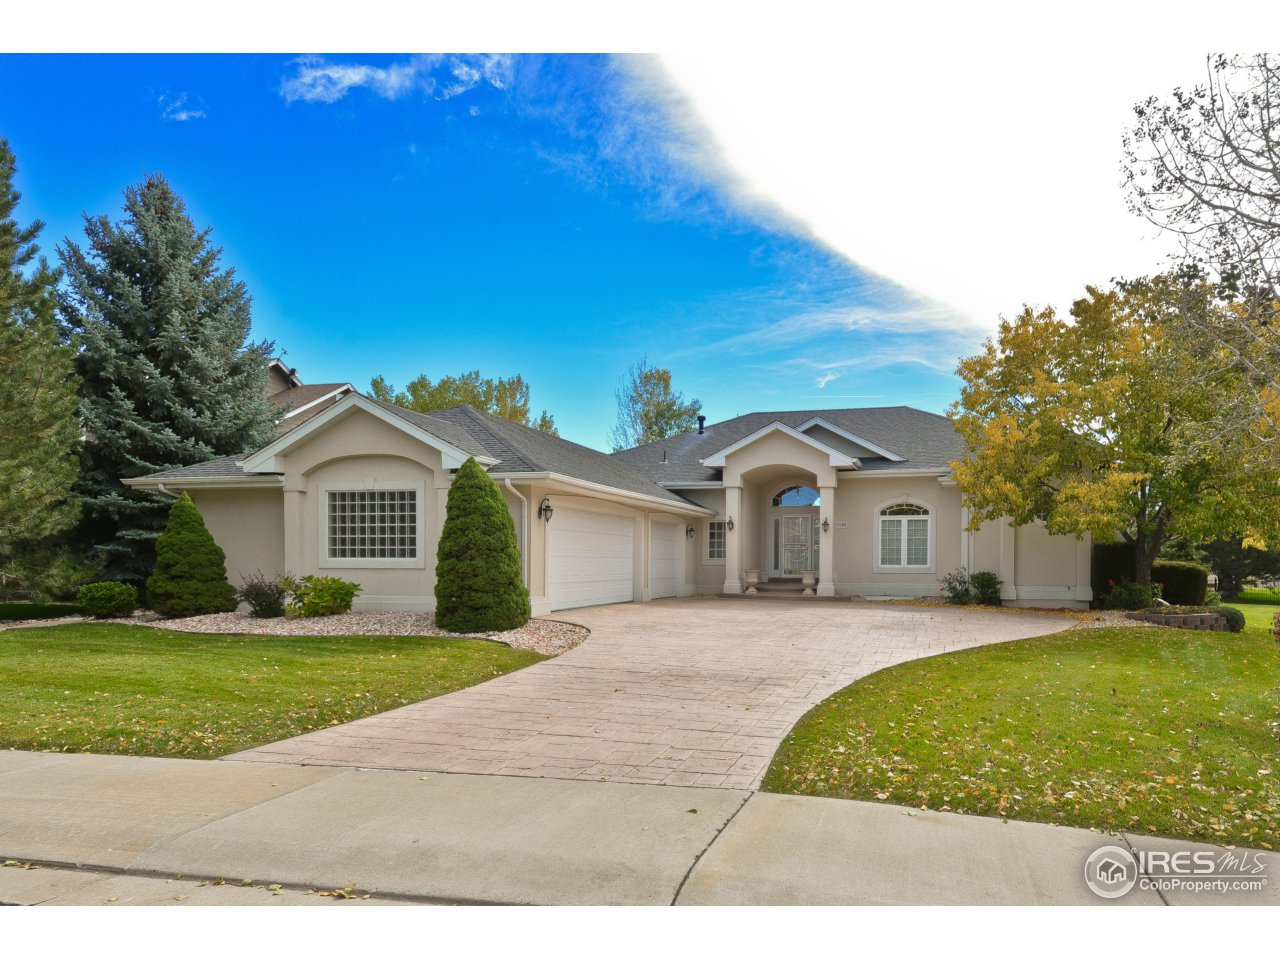 2109 Sand Dollar Cir, Longmont CO 80503